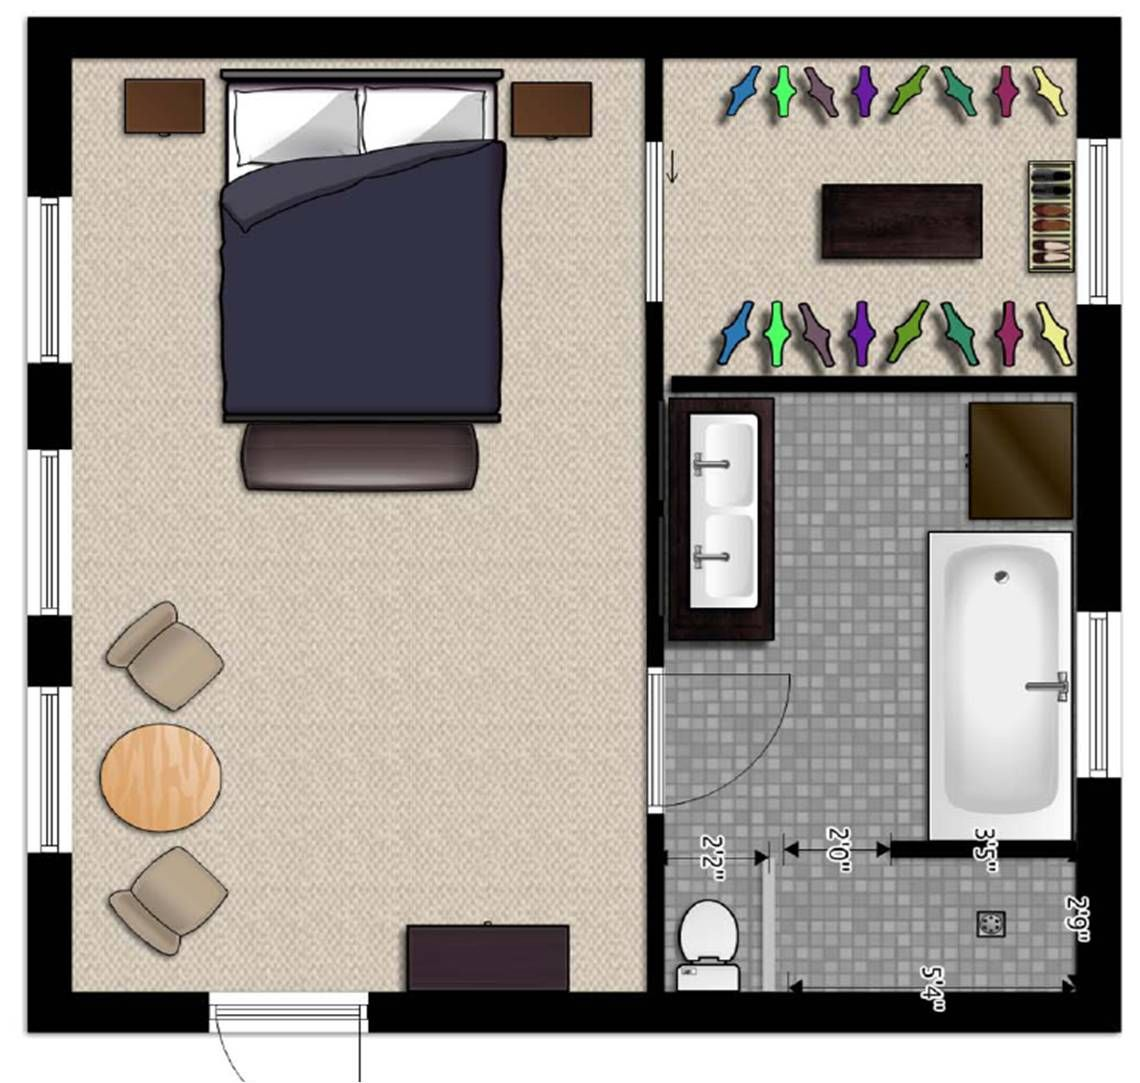 Master Bedroom Addition Floor Plans And Here Is The Proposed Floor Plan For The New Addition